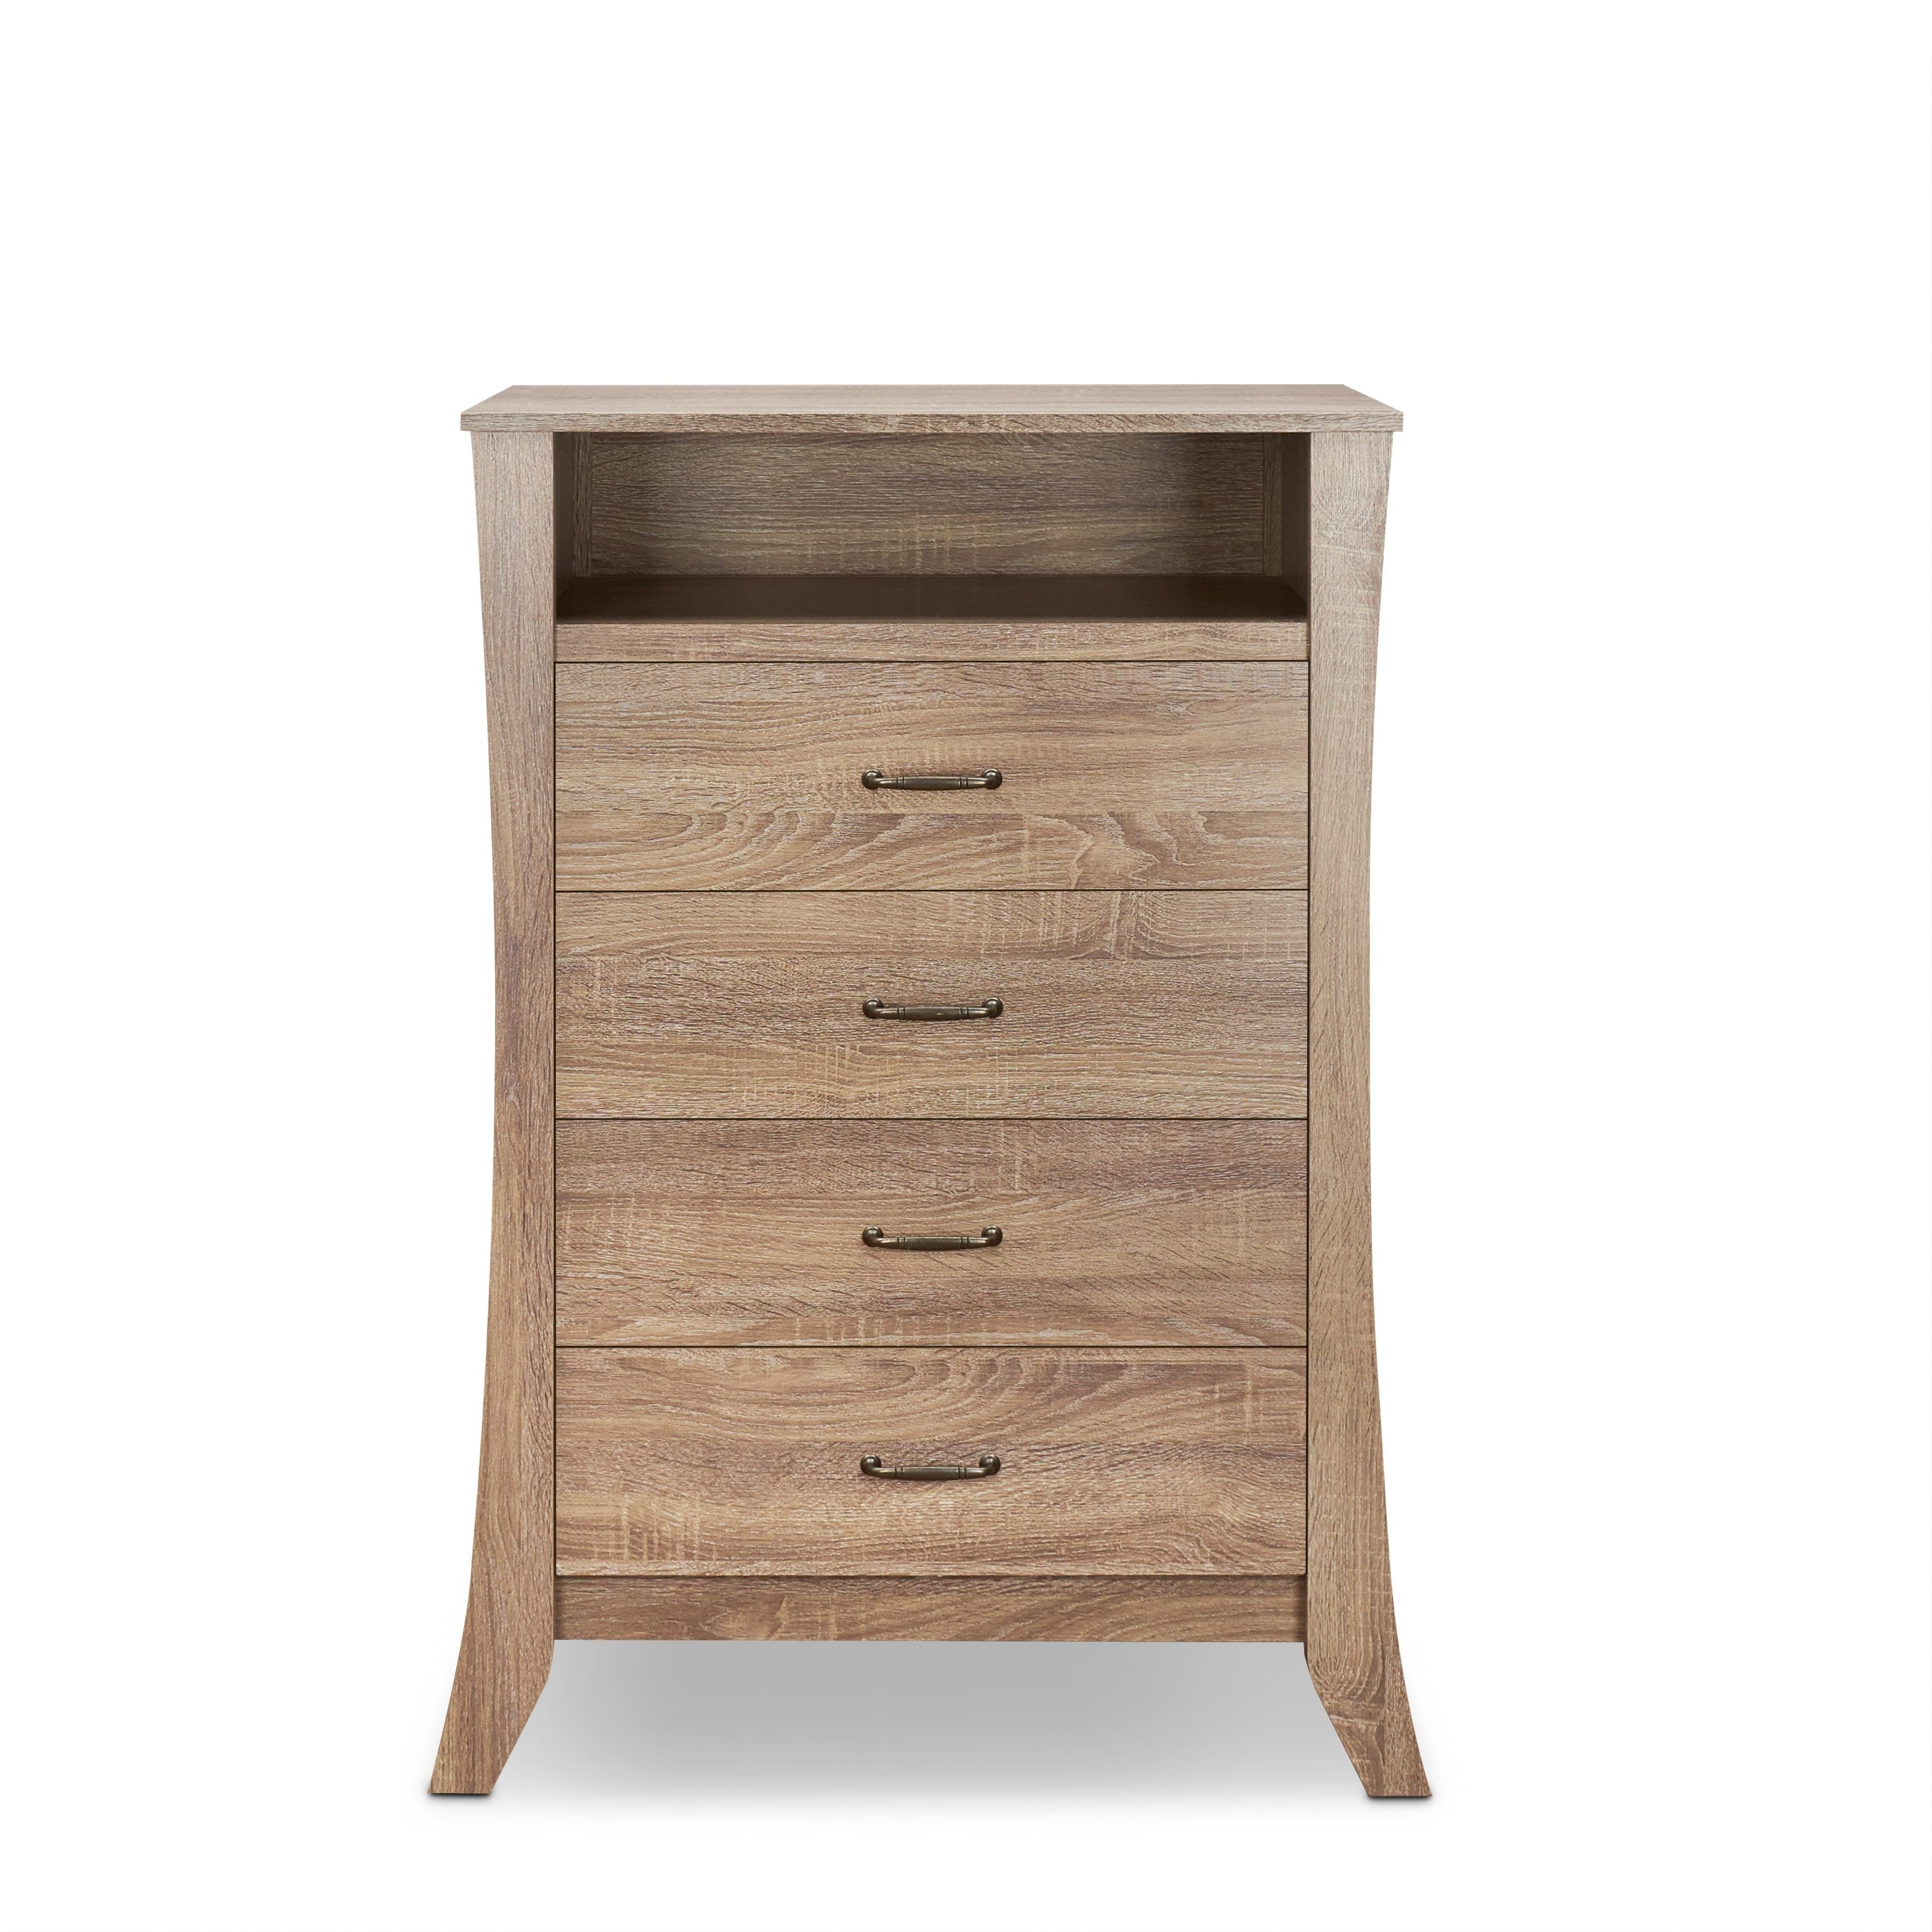 Buy Dressers & Chests Online At Overstock